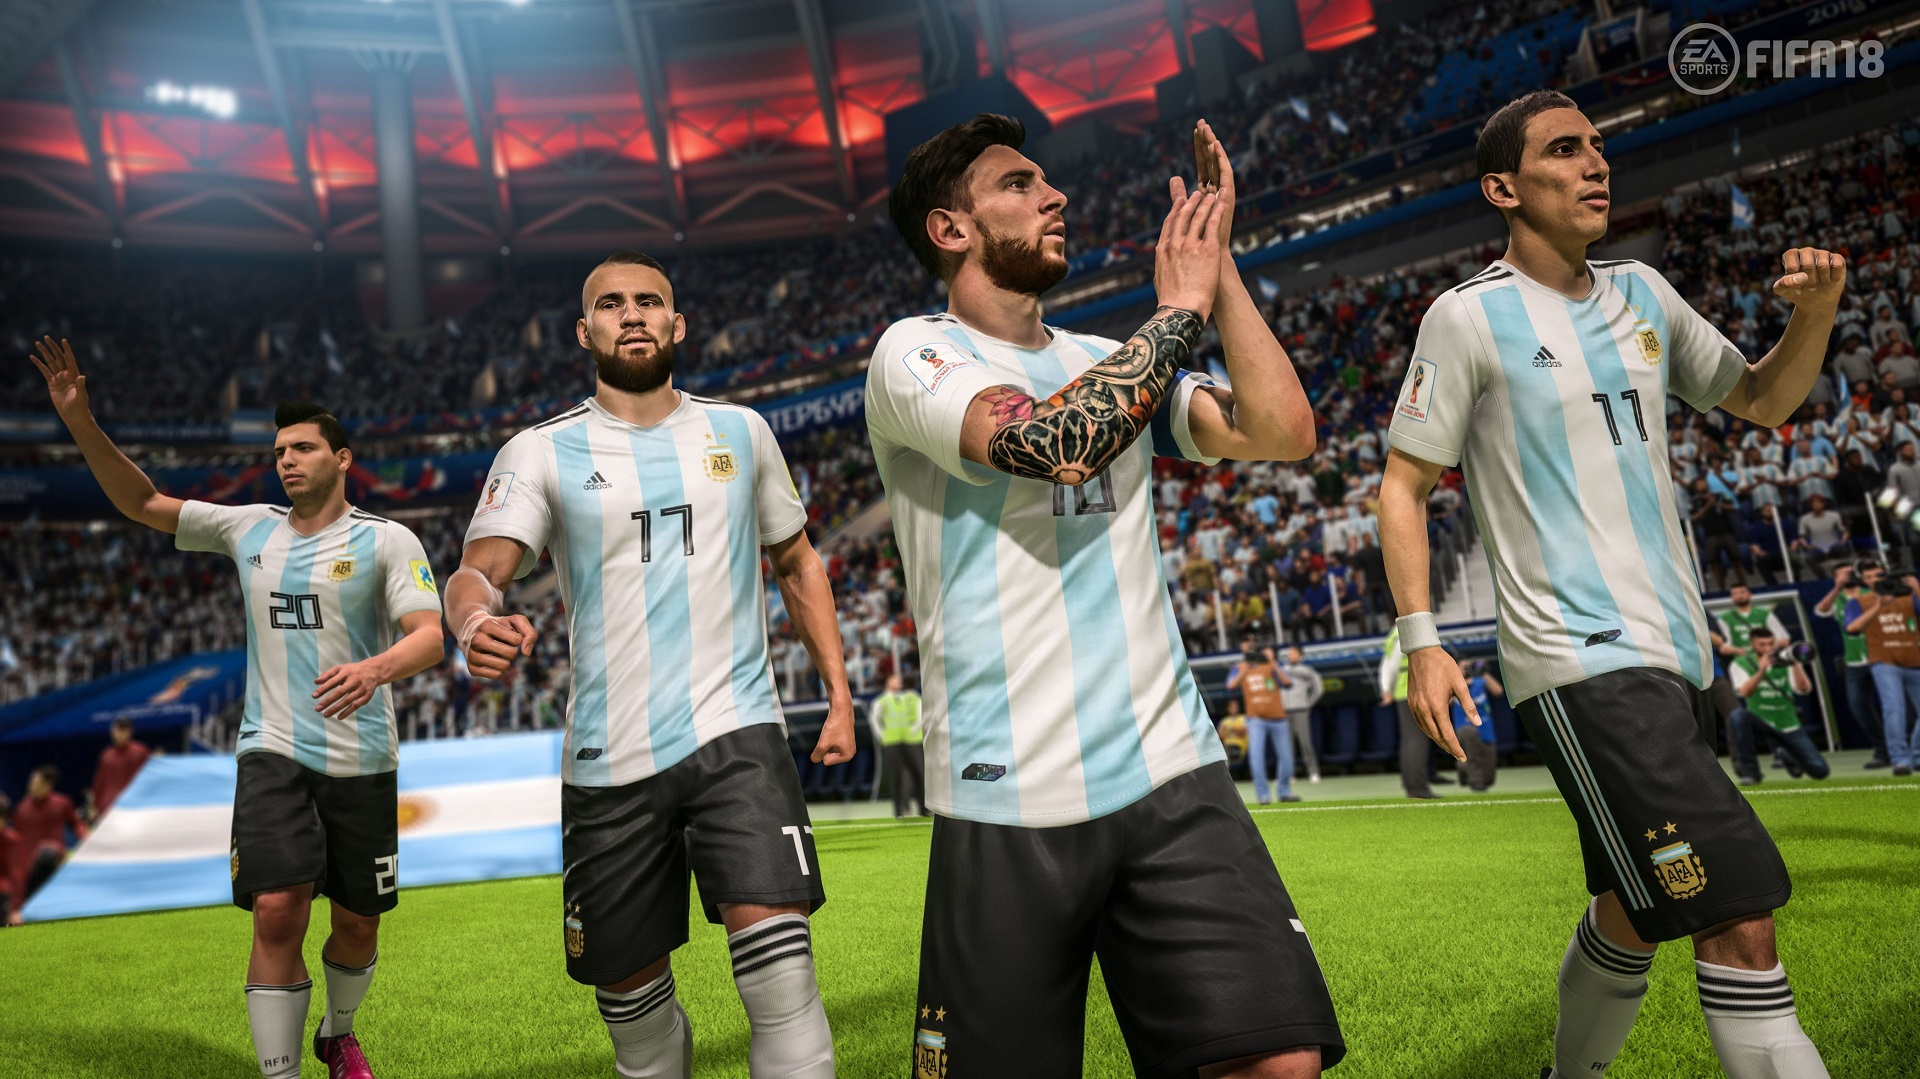 EA's adding a free World Cup mode to FIFA 18 screenshot